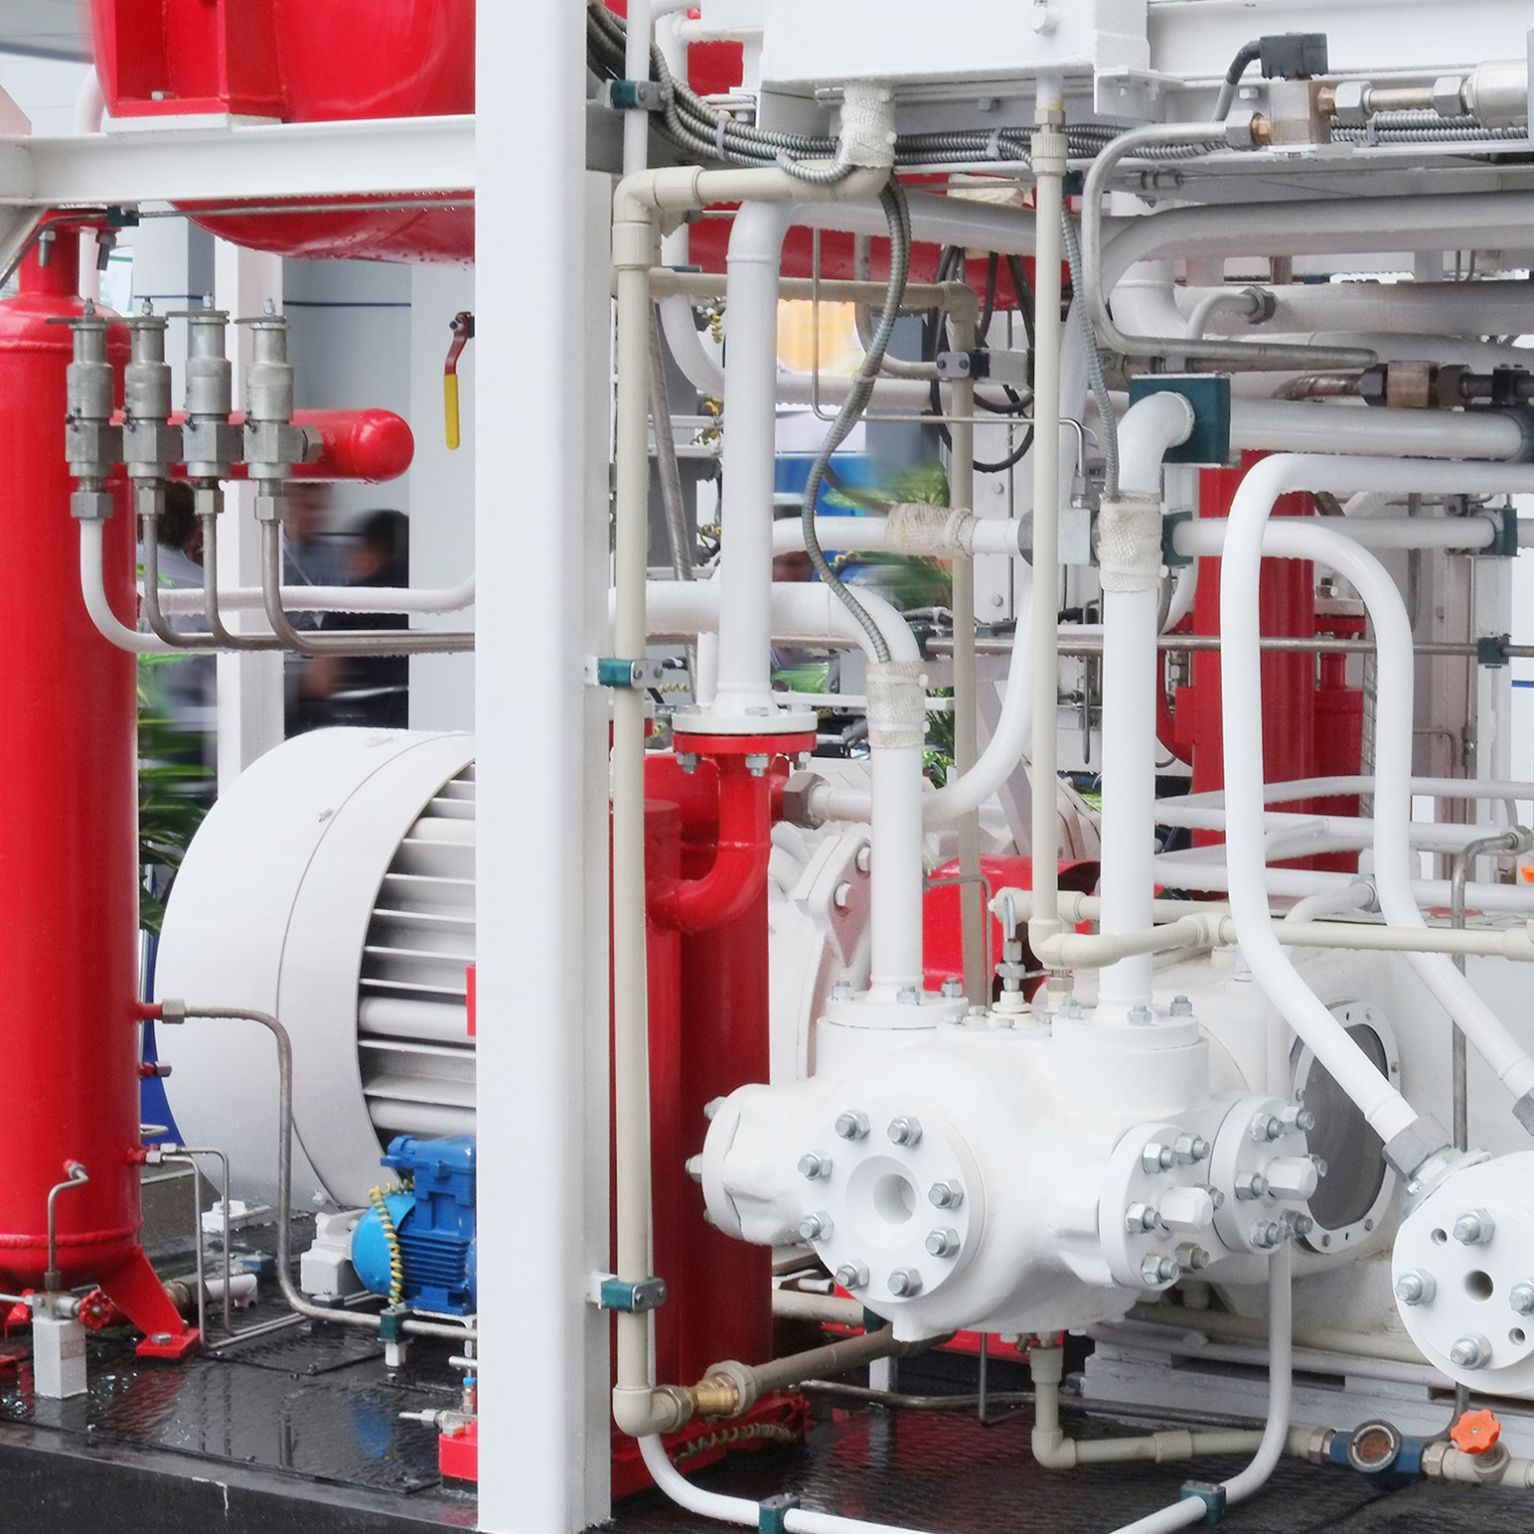 Red tanks surrounded by while piped and gauges.